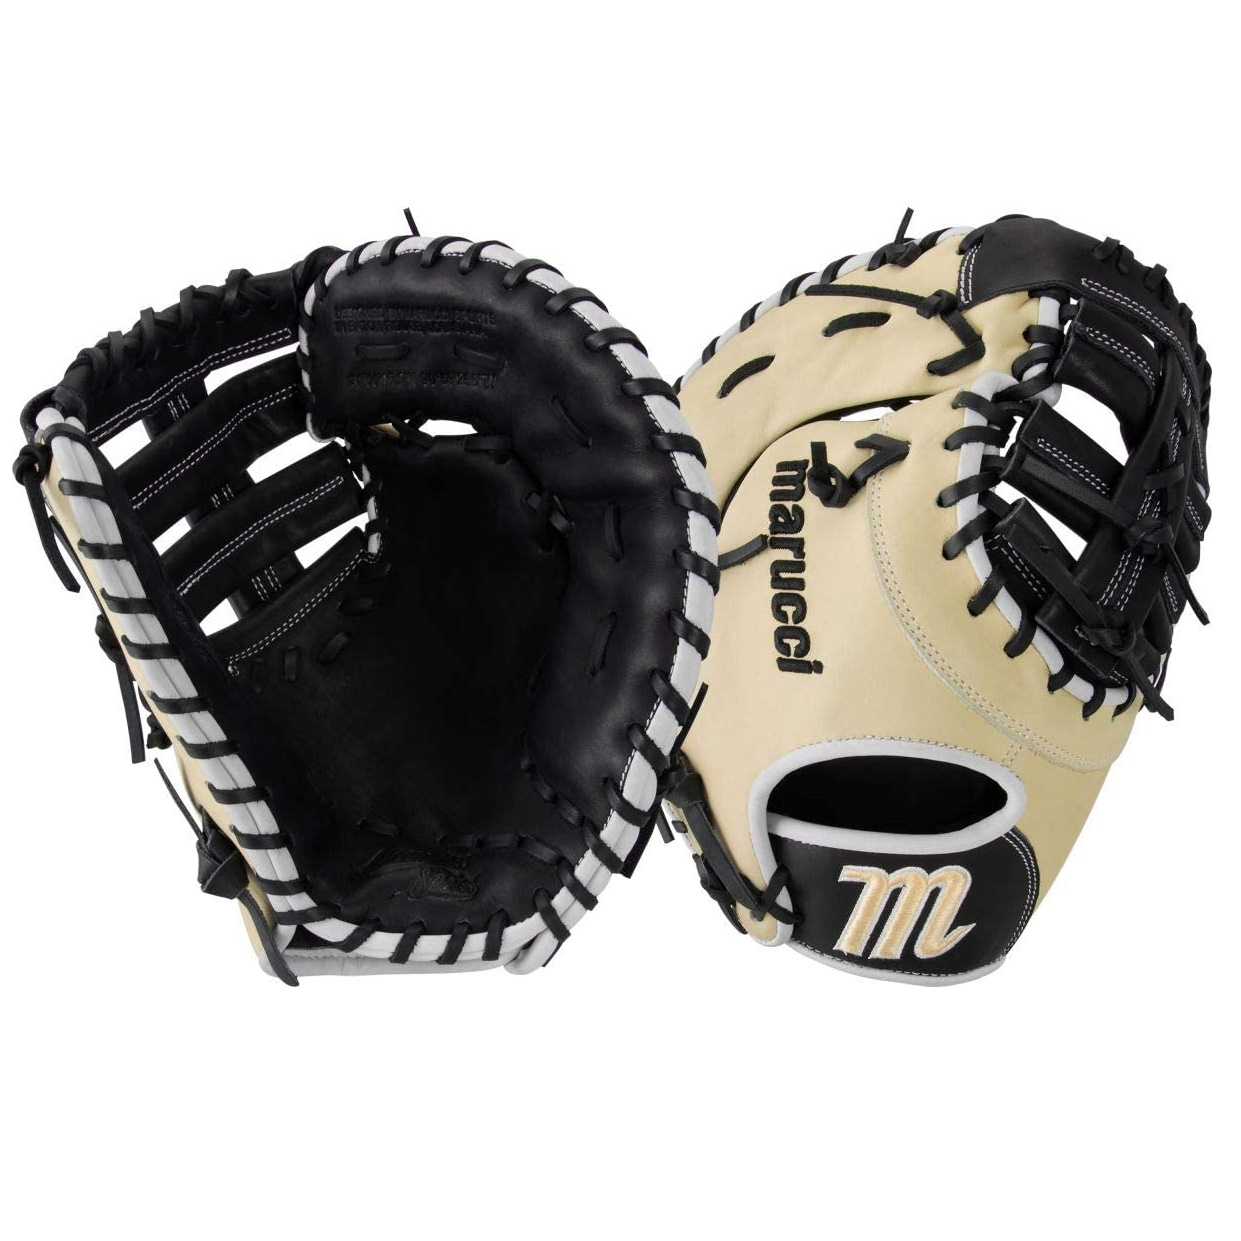 marucci-ascension-as3y-12-5-first-base-mitt-right-hand-throw MFGAS3FBY-RightHandThrow Marucci  Tight-grain steer hide shell leather and palm lining increases durability while